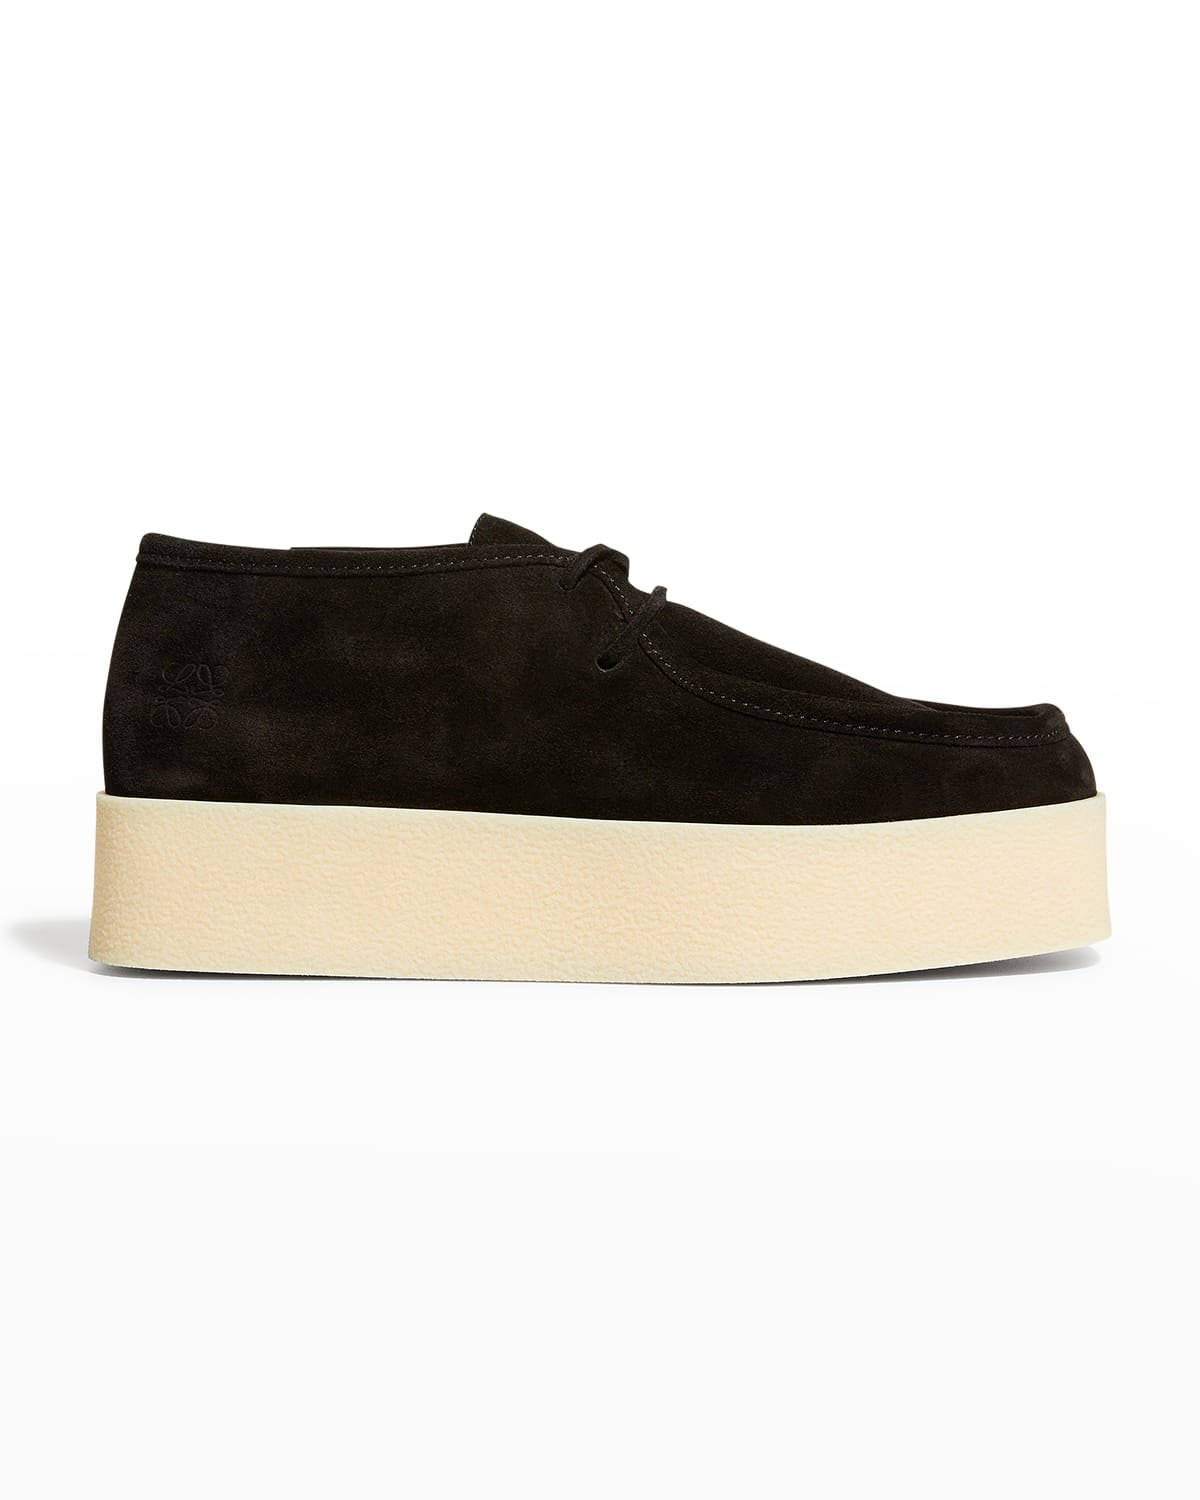 Men's Wedge Moccasin Lace-Ups